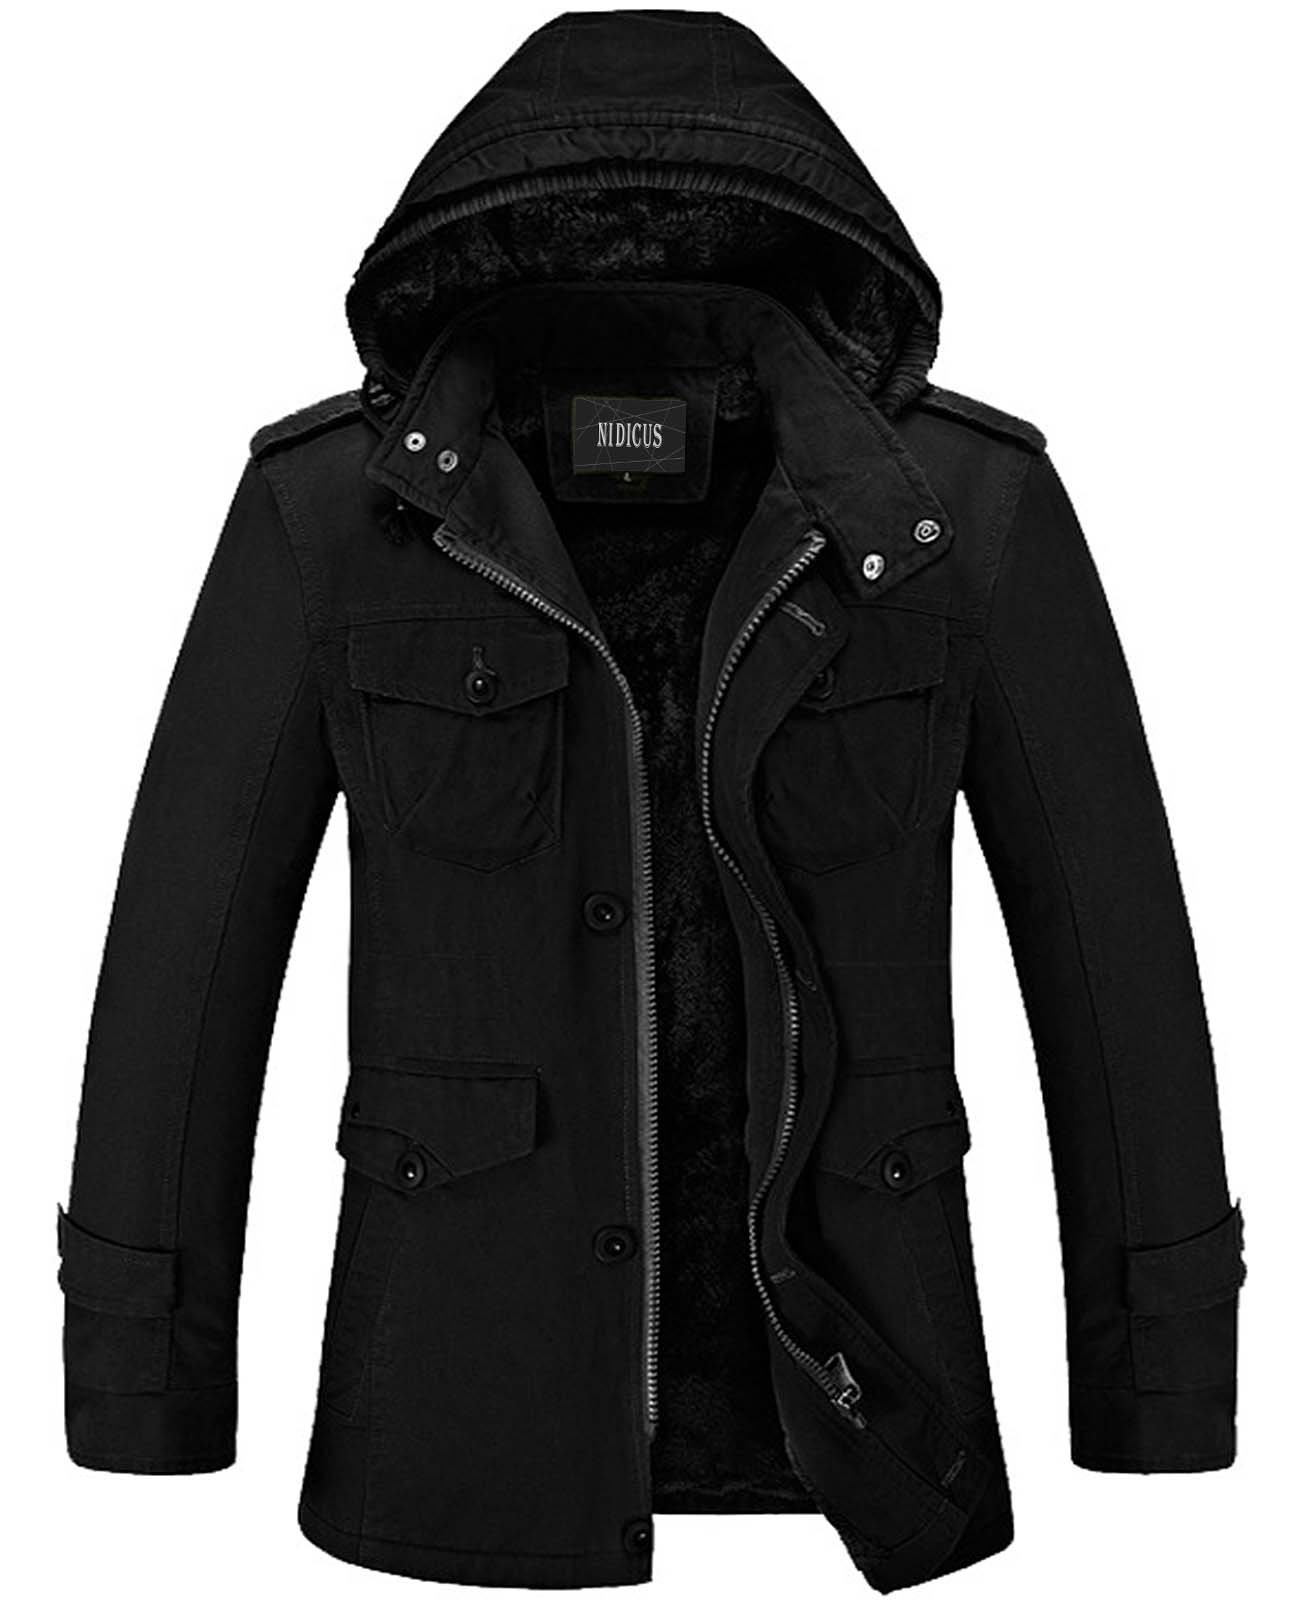 Nidicus Mens Classic Zipper Up Pea Coat with Removable Hood & Fleece Lining Black XXL by Nidicus